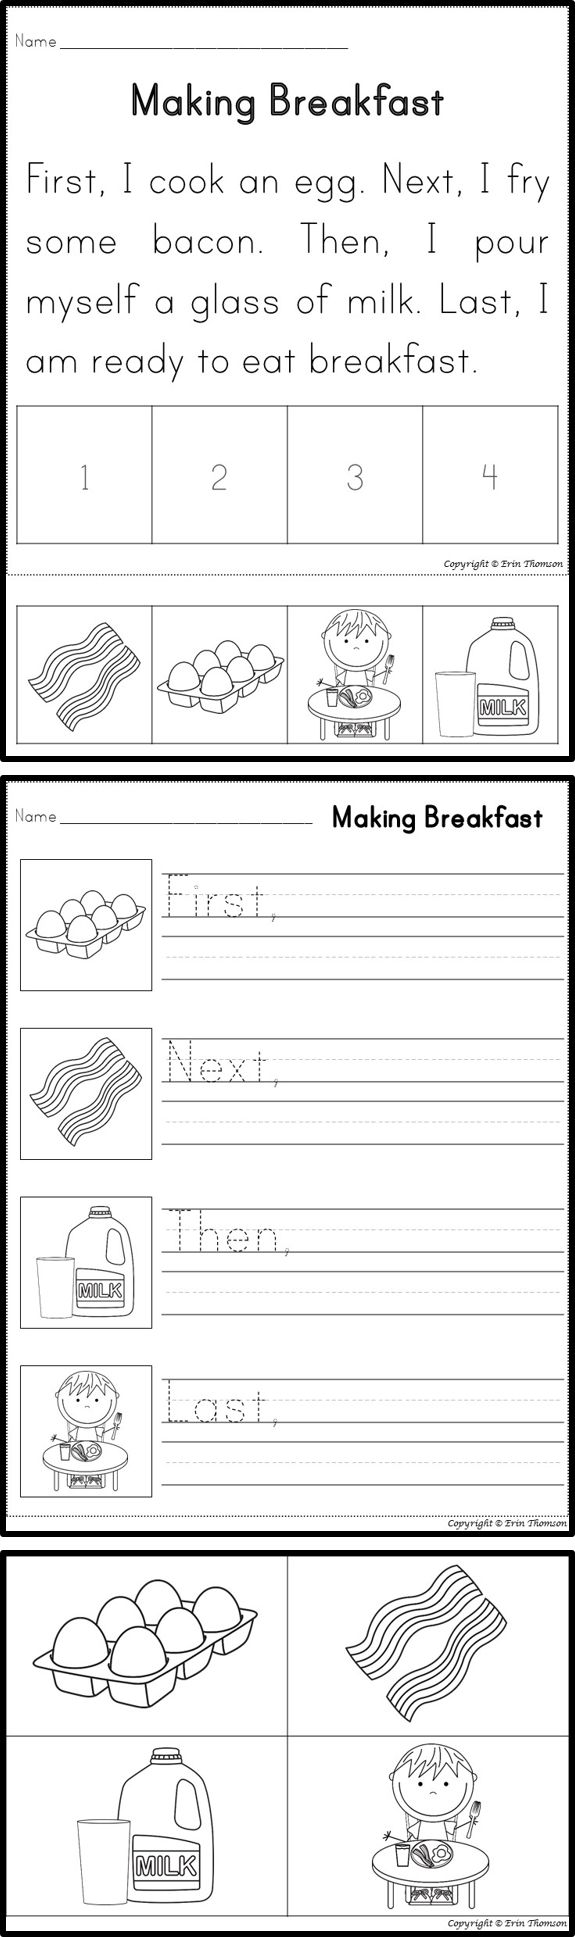 Uncategorized Story Sequence Worksheets 25 best ideas about sequencing worksheets on pinterest stories first next then last set 3